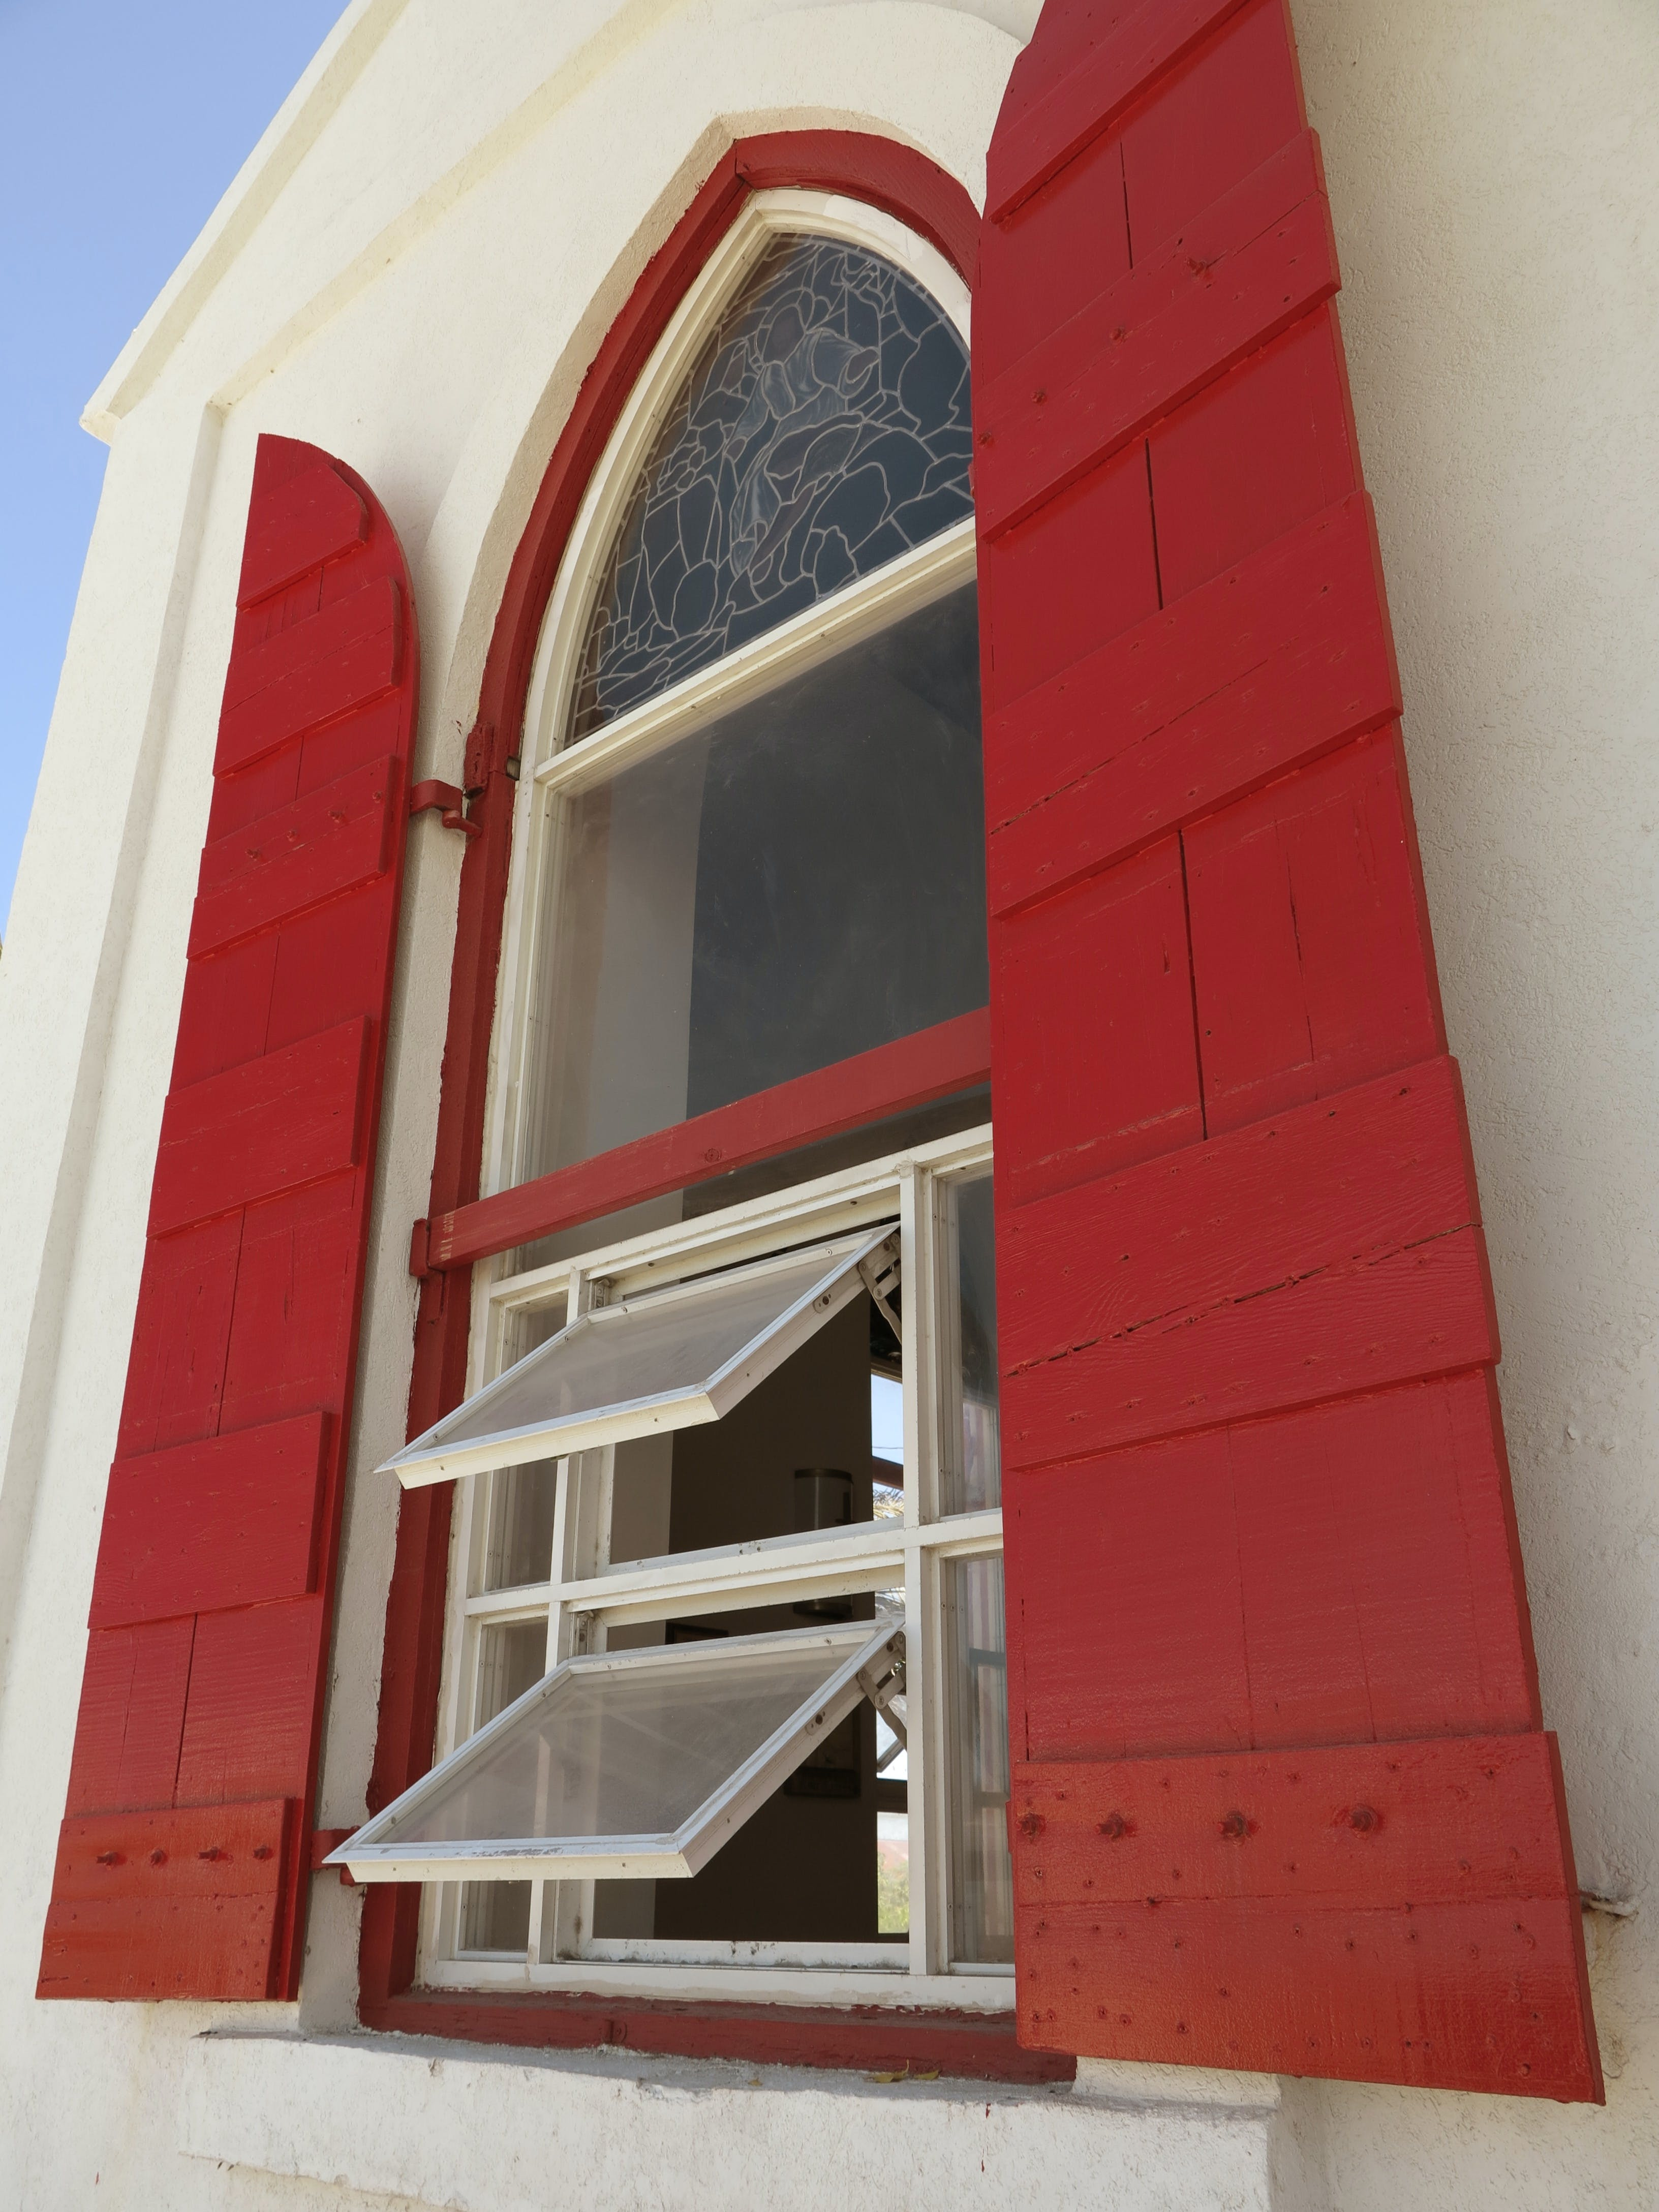 Free stock photo of arched window, turks and caicos, window